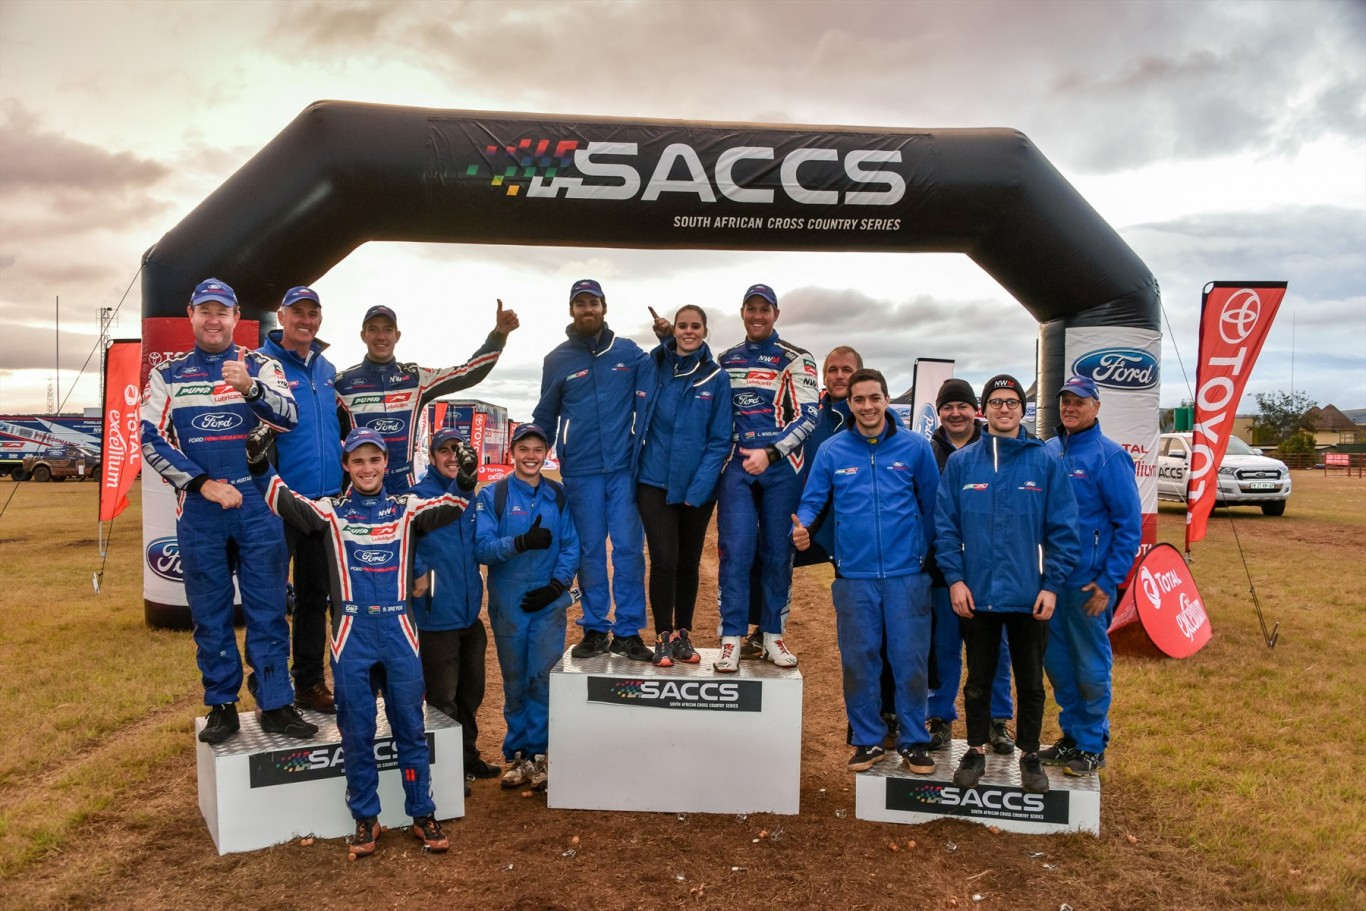 Ford NWM Puma Lubricants team victorious on treacherous Battlefields 400 Cross Country race